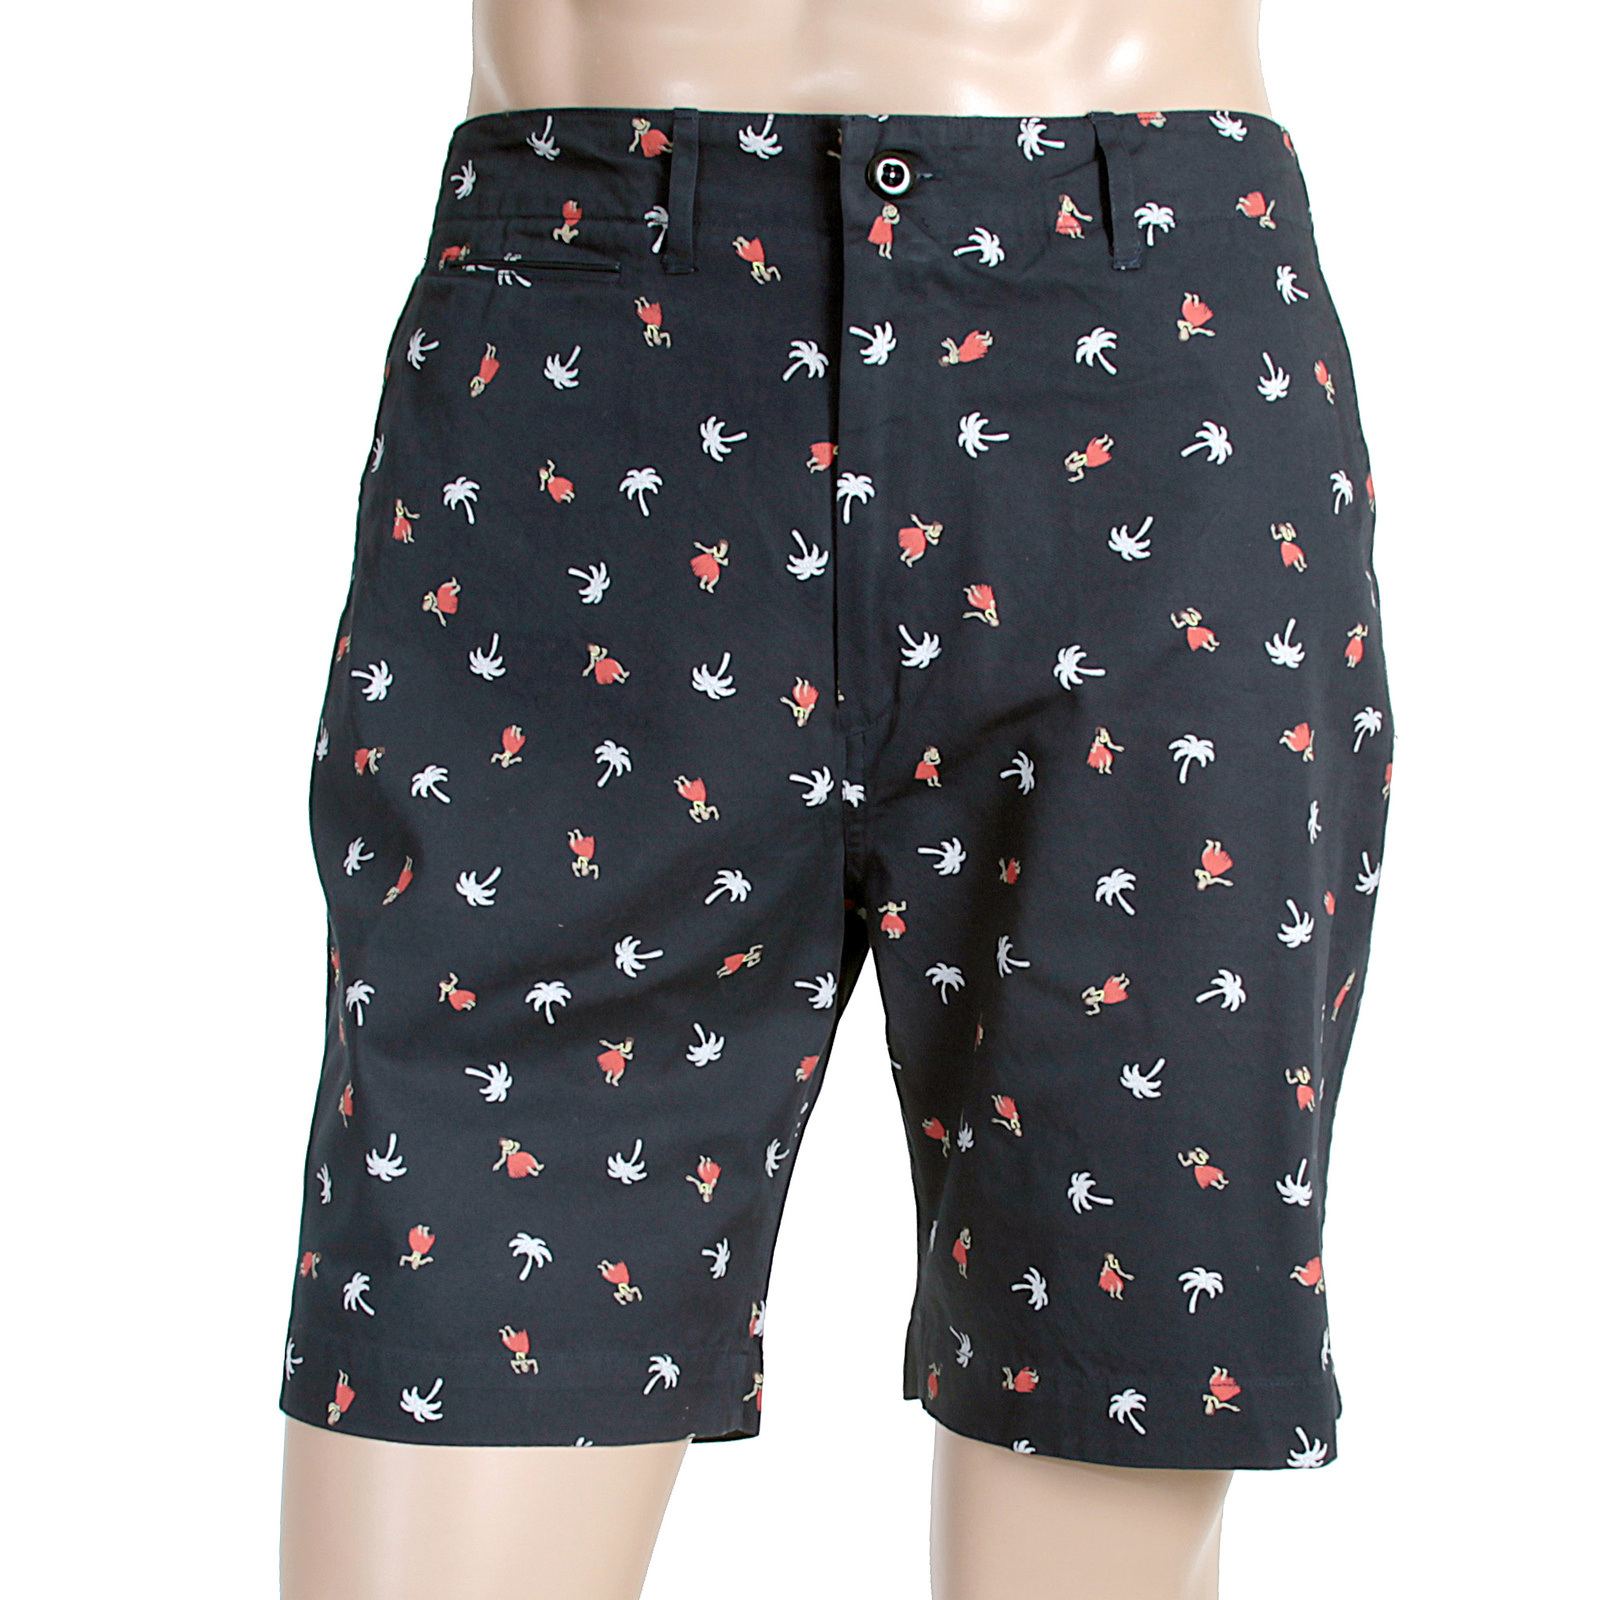 Shop for mens printed shorts online at shopnow-bqimqrqk.tk Next day delivery and free returns available. s of products online. Browse Hawaiian inspired prints!